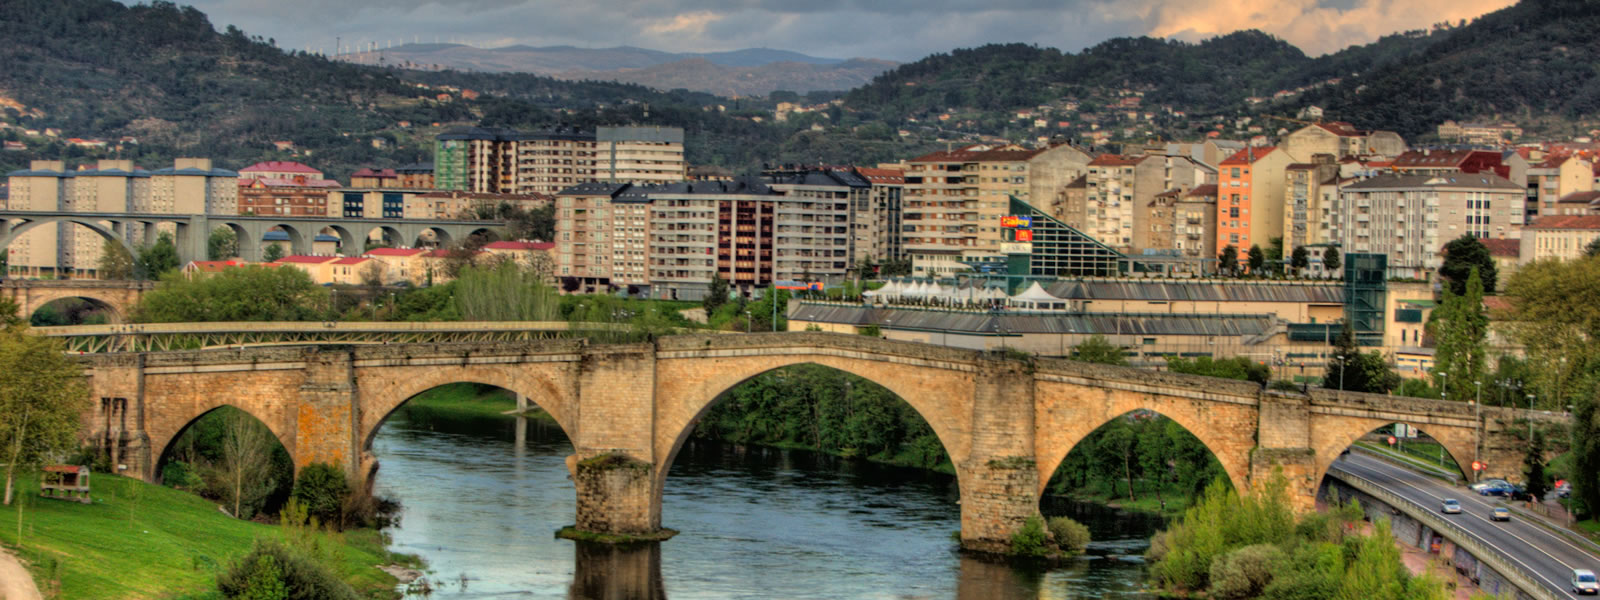 07-ourense